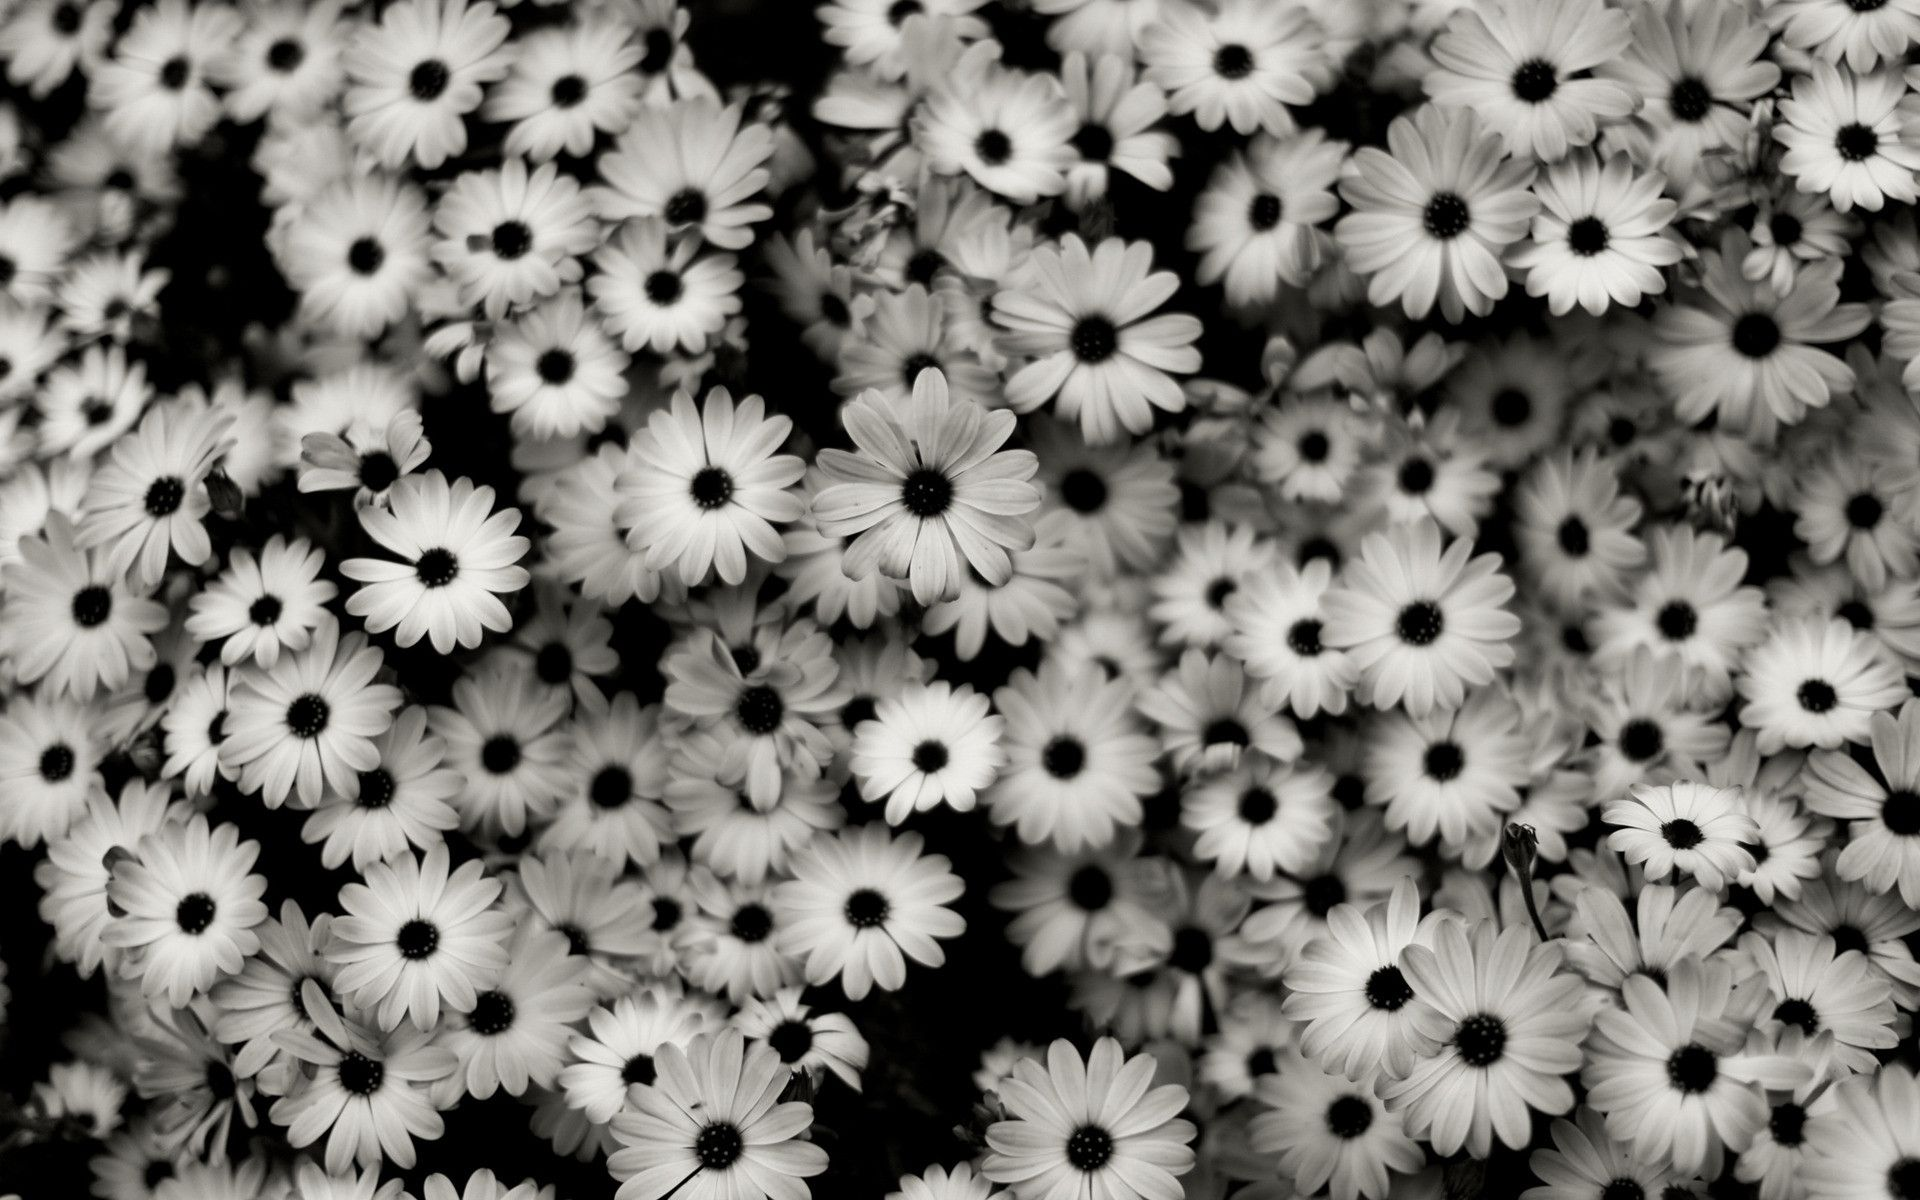 Black And White Aesthetic Flower Wallpapers Top Free Black And White Aesthetic Flower Backgrounds Wallpaperaccess